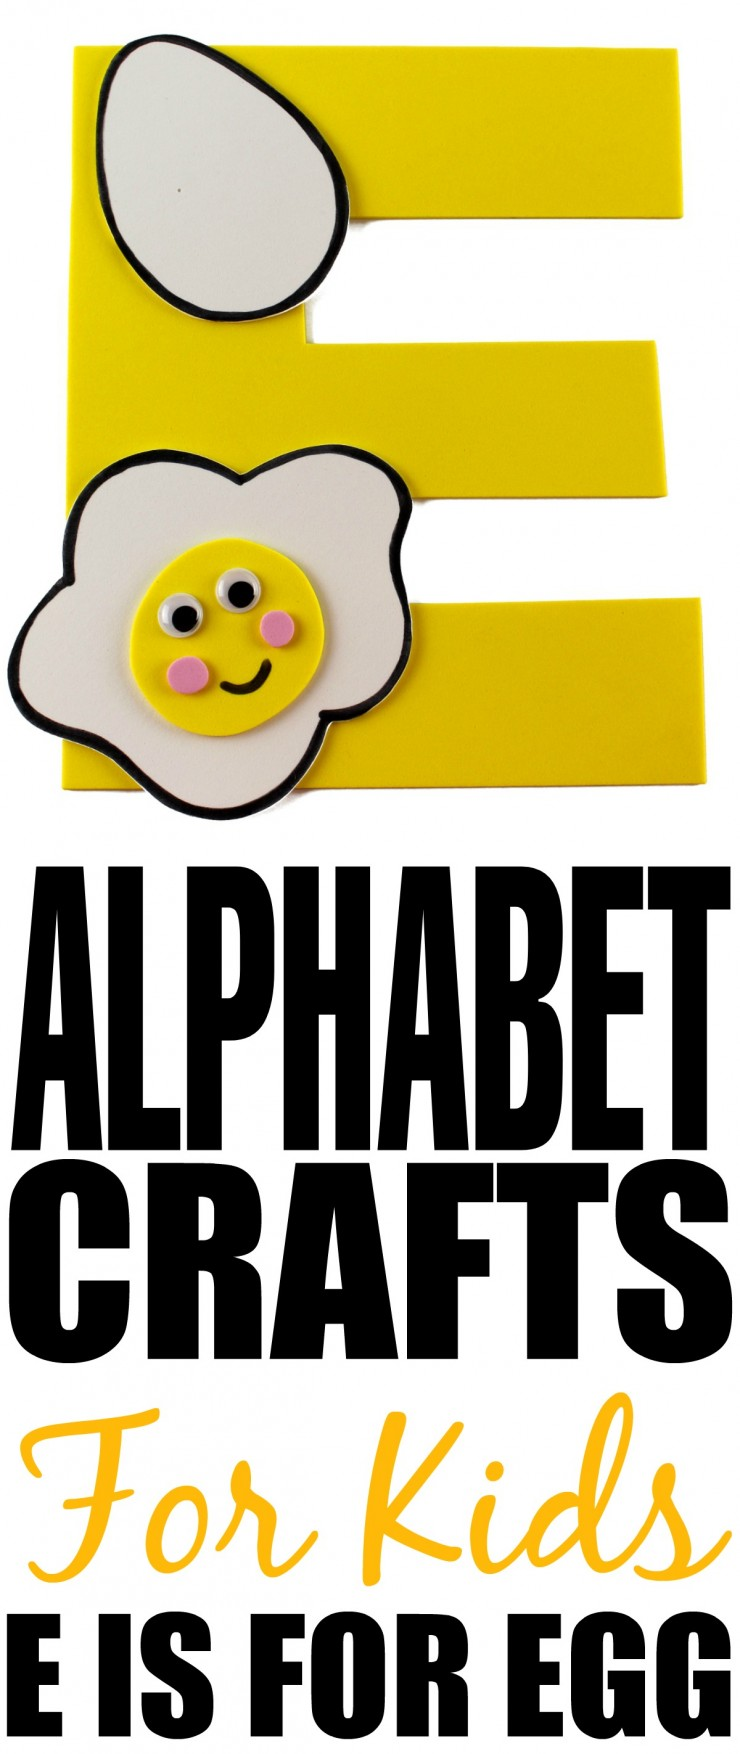 This week is my series of ABCs kids crafts featuring the Alphabet, we are doing a E is for Egg craft. These Alphabet Crafts For Kids are a fun way to introduce your child to the alphabet.